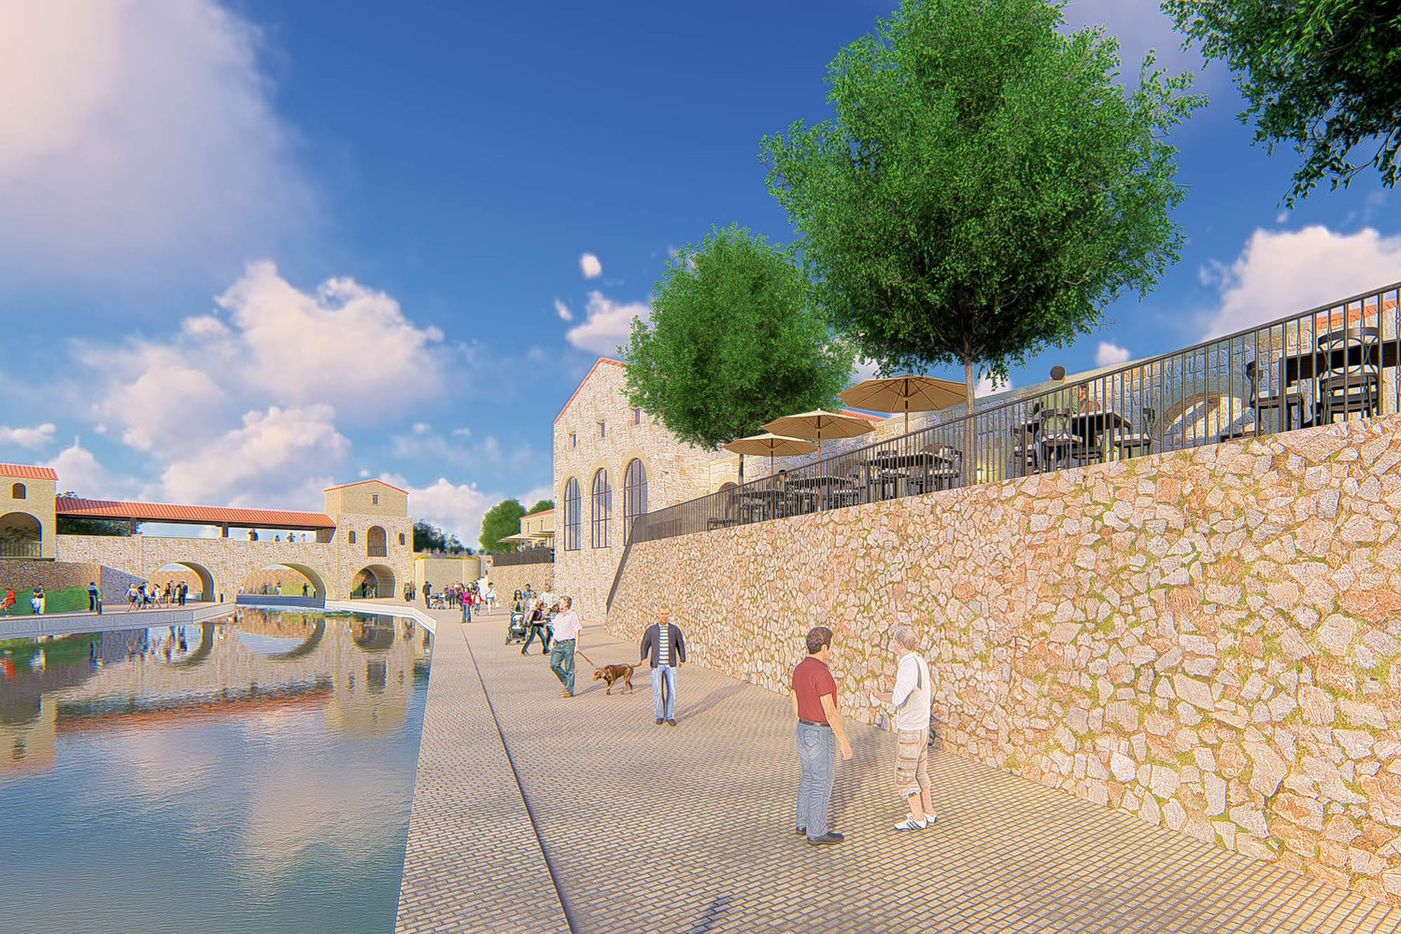 A lakeside restaurant village and bridge is shown in an artists concept for Entrada.